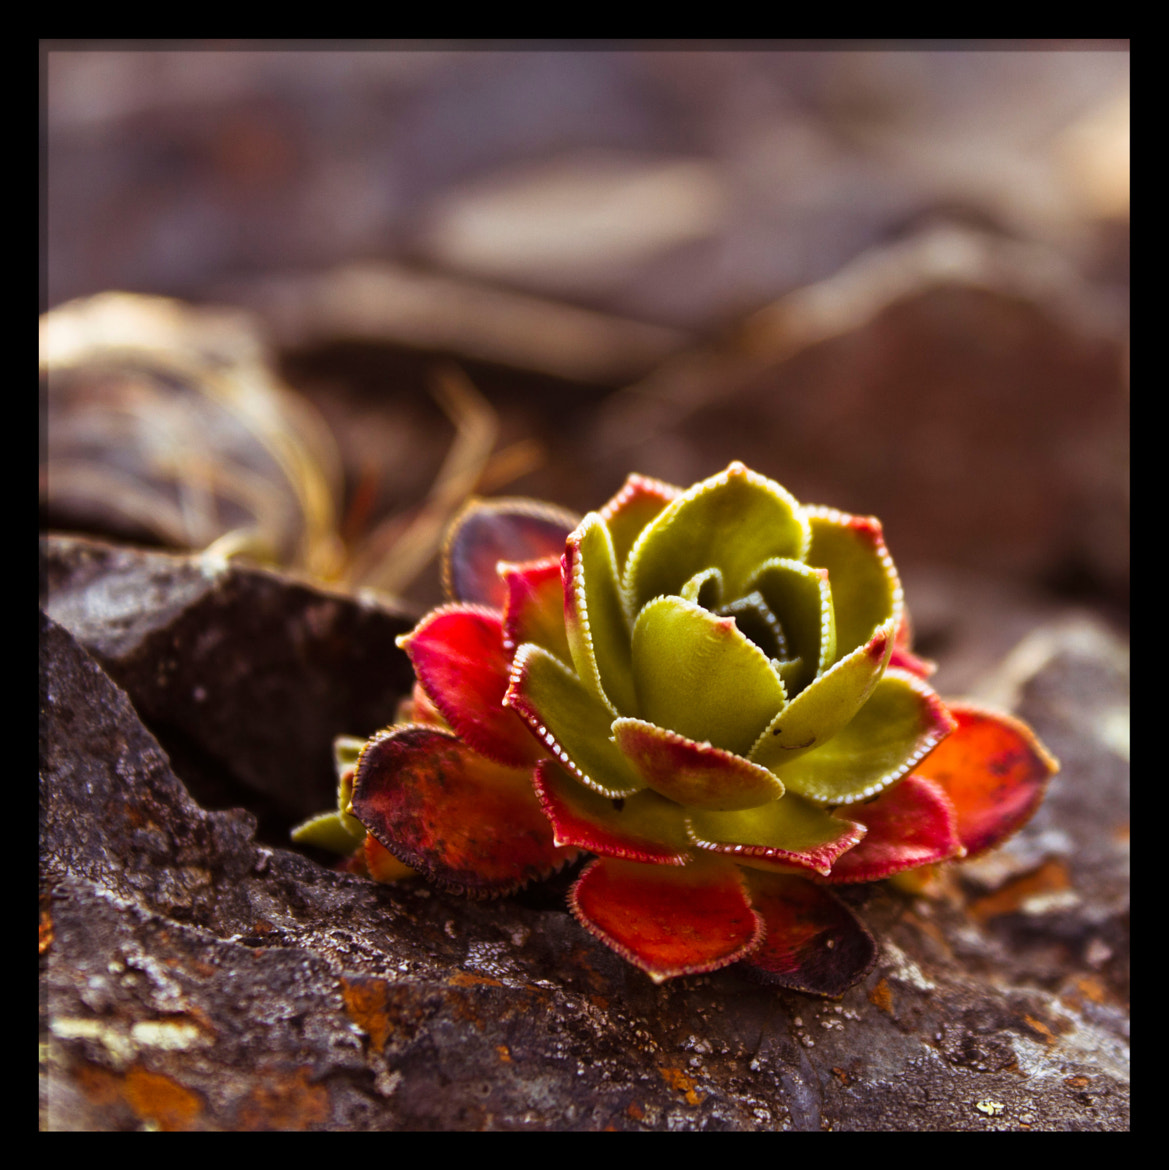 Photograph Saxifraga cetyledon L by Torfi Matthíasson on 500px